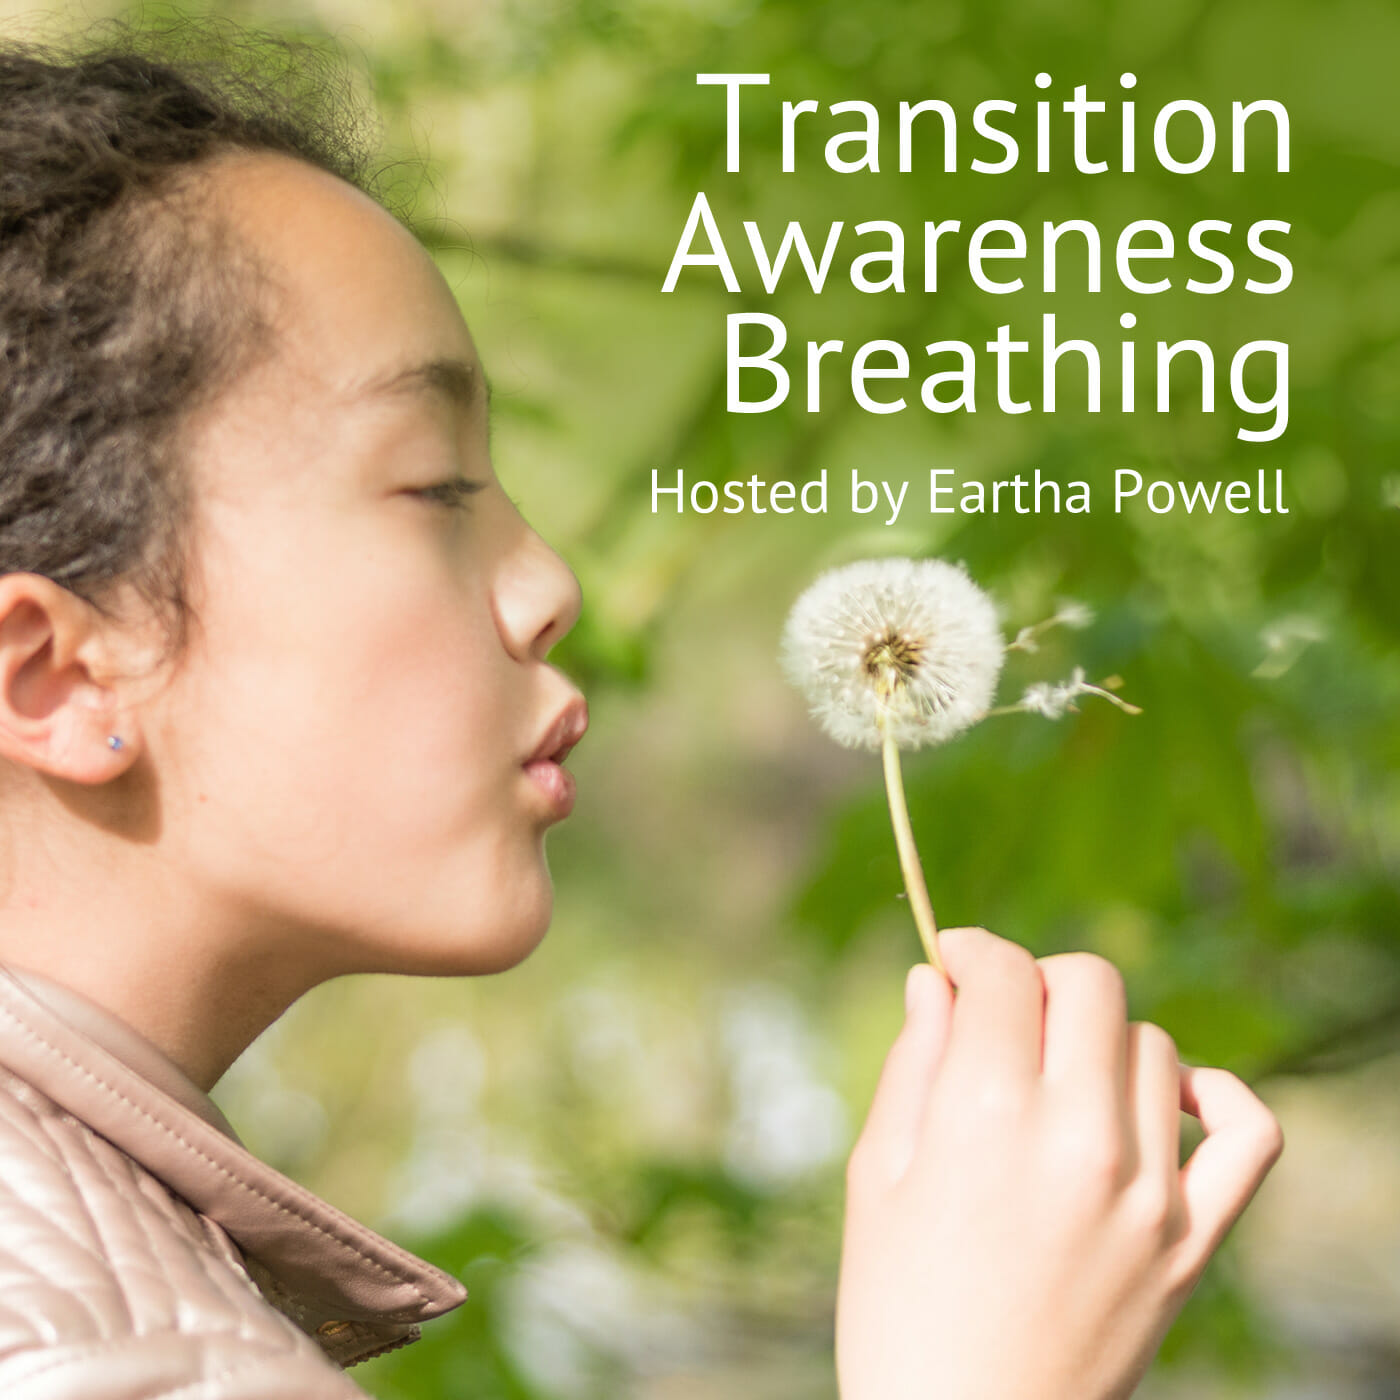 Transition Awareness Breathing